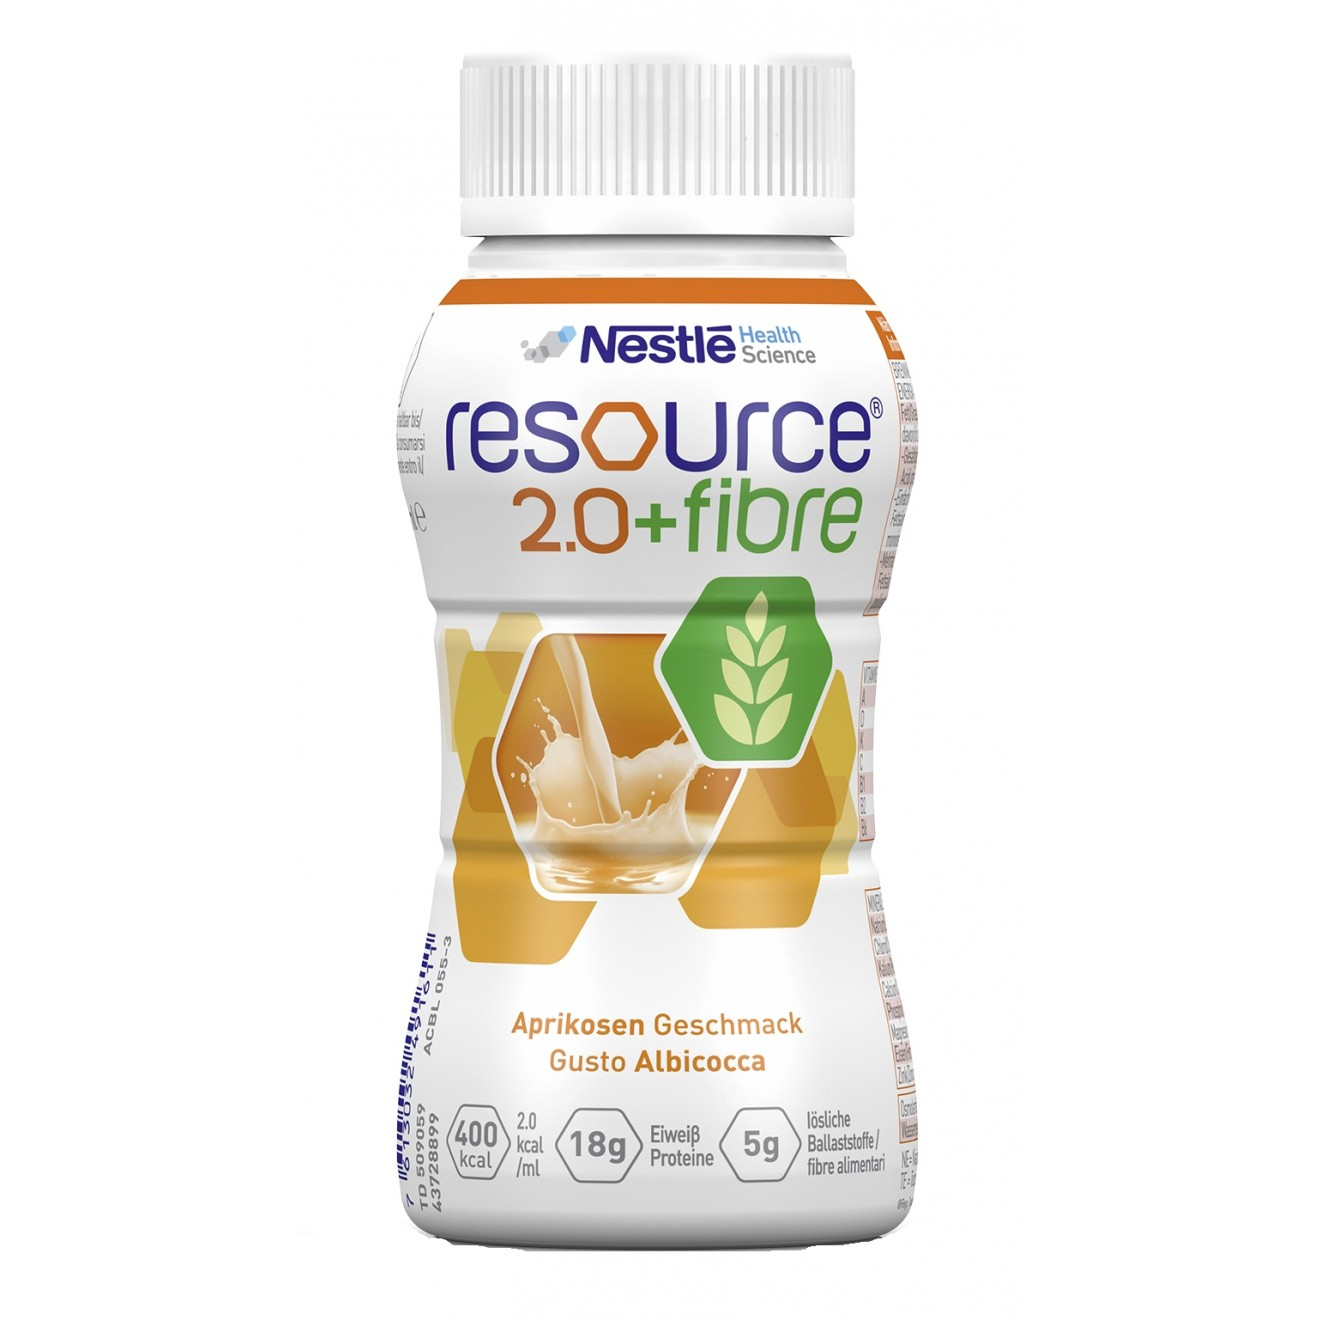 RESOURCE 2.0+fibre Aprikose 6x4x200ml